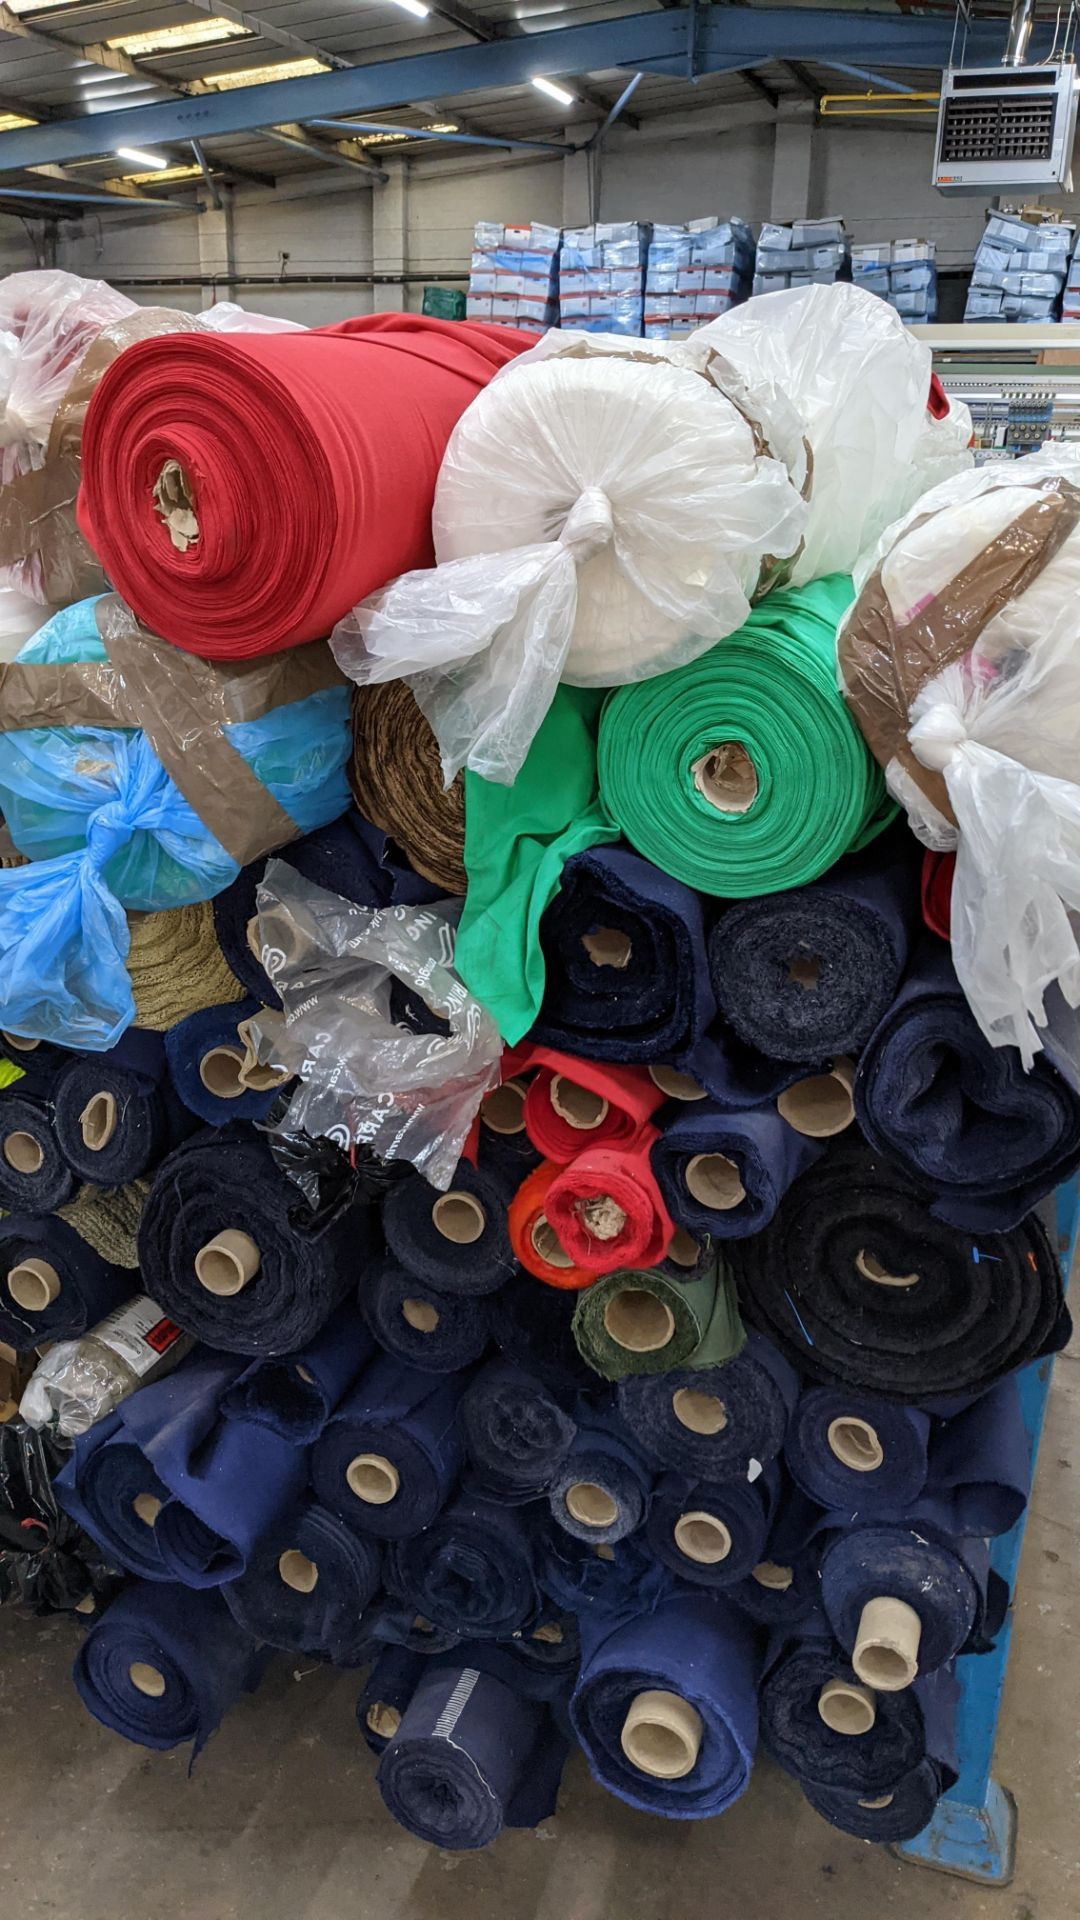 The contents of a large stillage of fabric. Please note the stillage is excluded and cannot be remo - Image 6 of 8